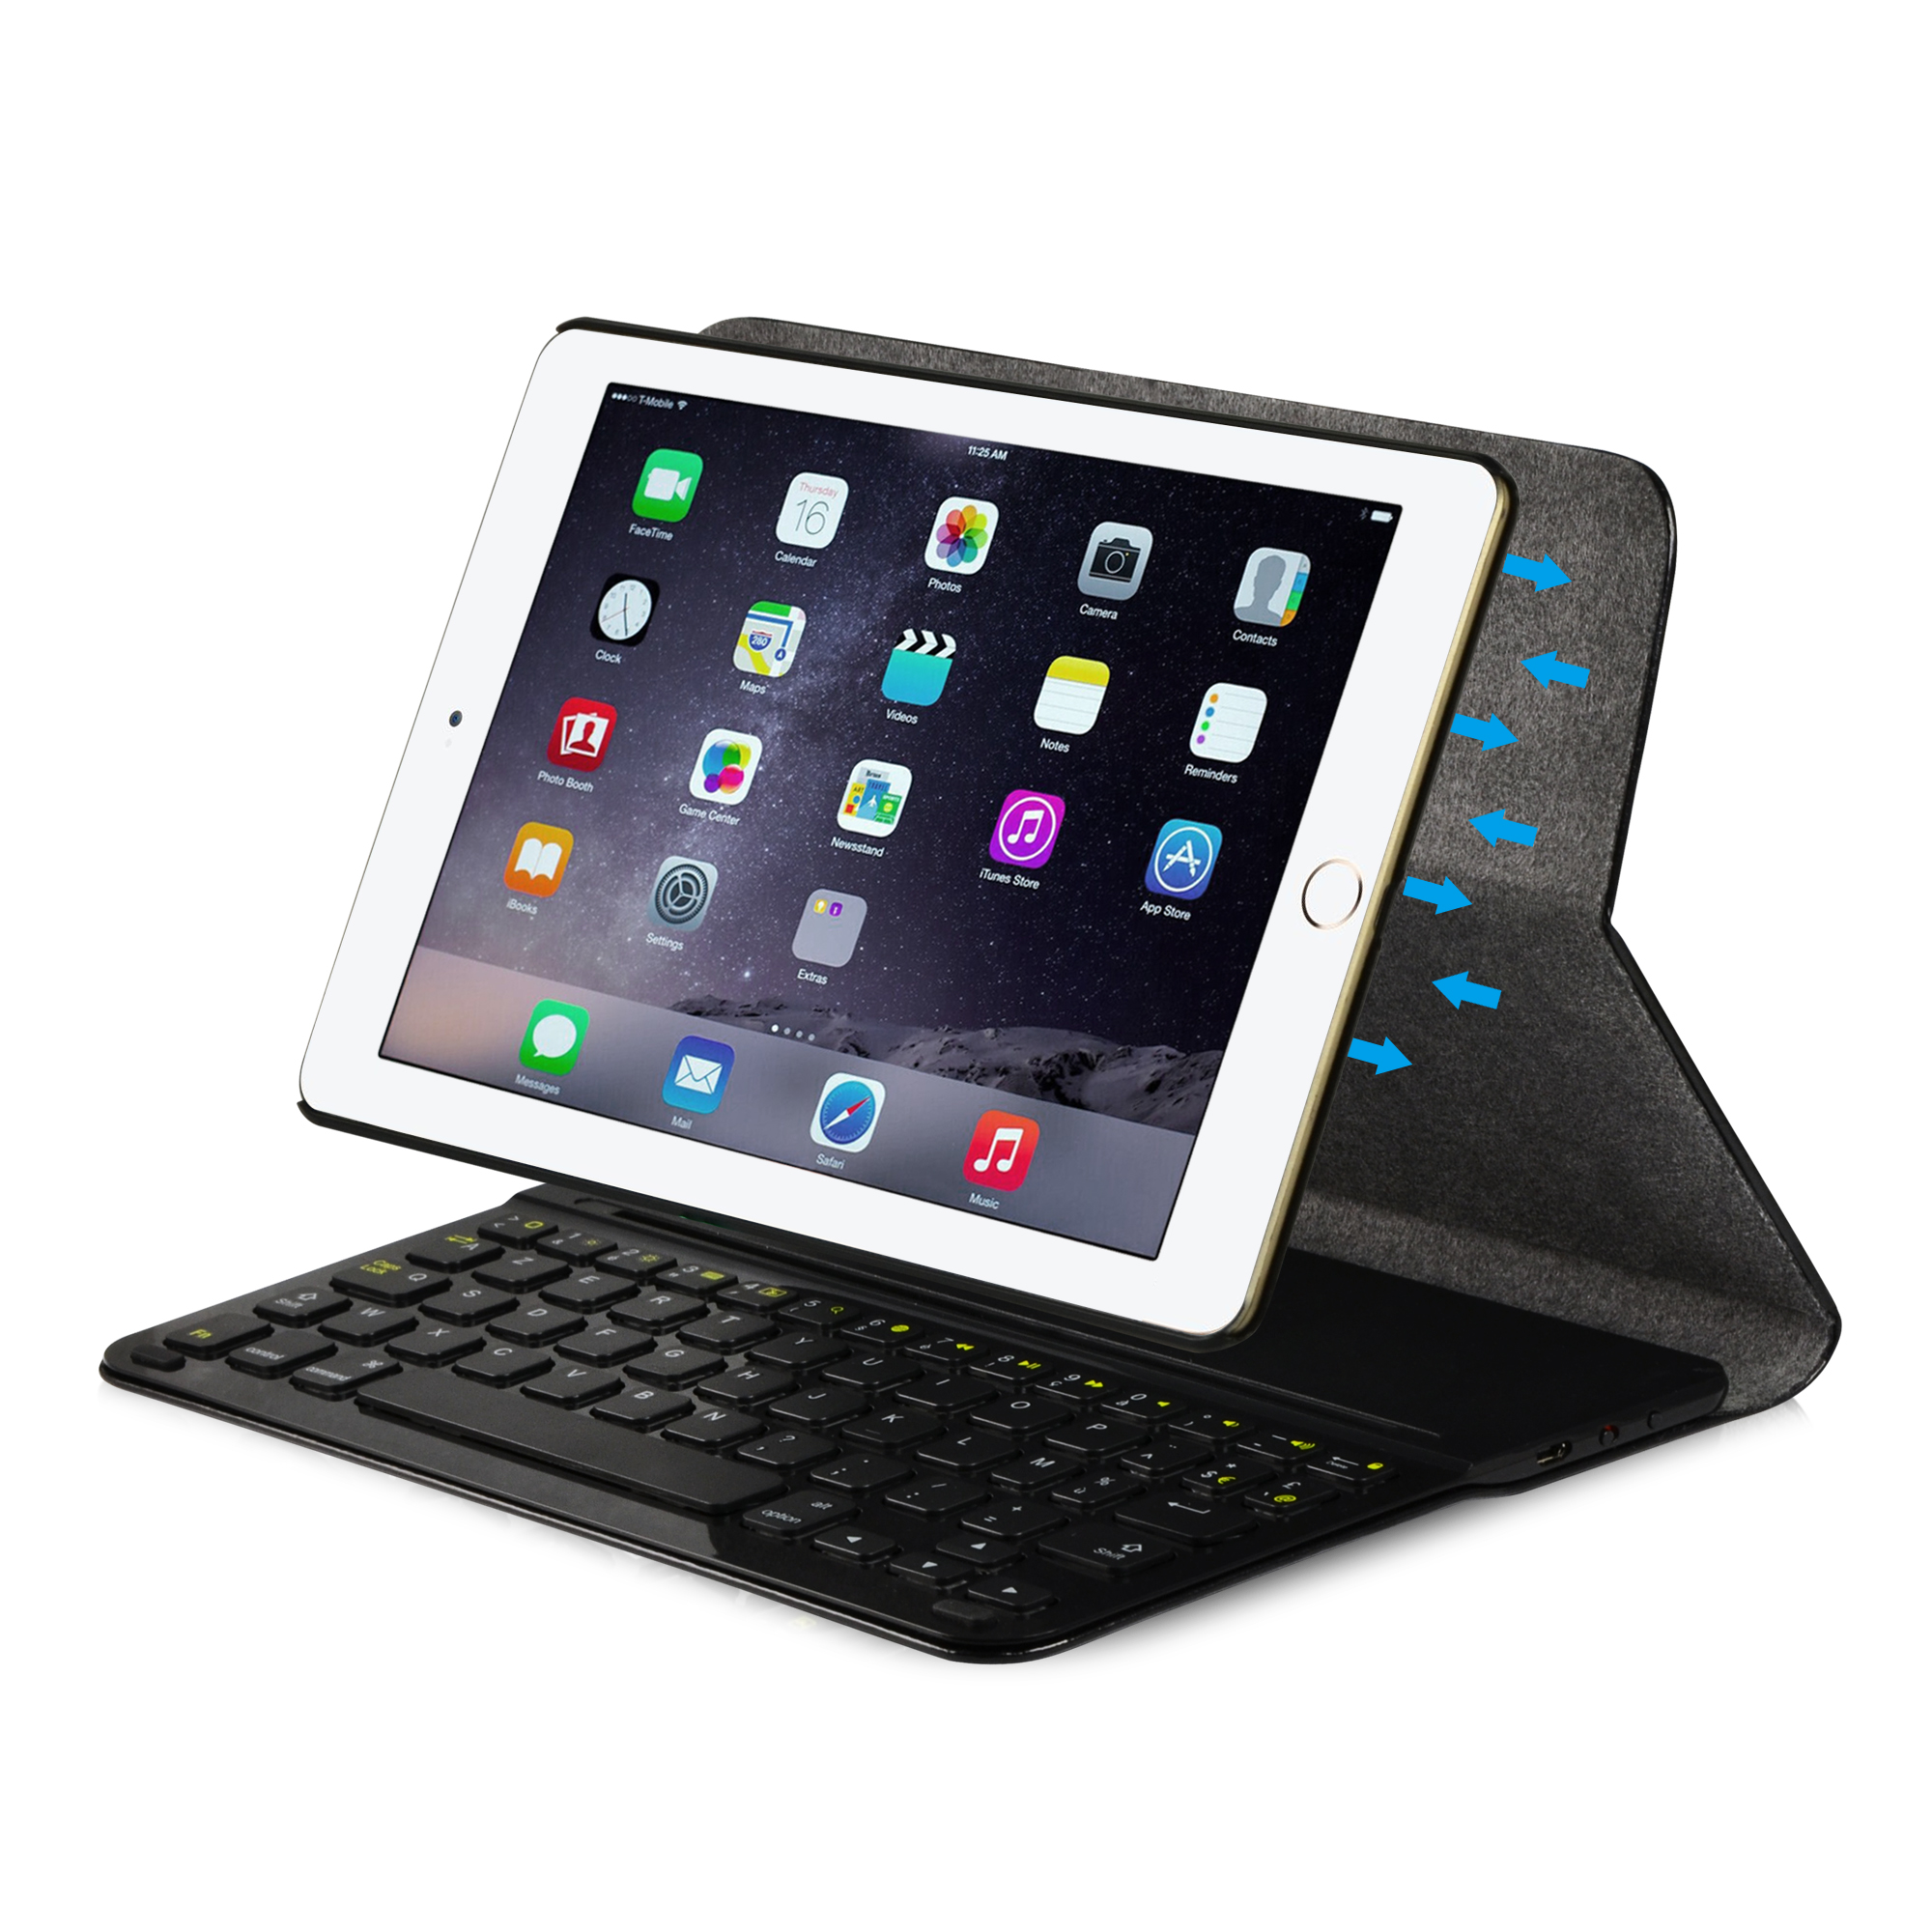 leicke sharon ipad air 2 h lle mit bluetooth tastatur. Black Bedroom Furniture Sets. Home Design Ideas